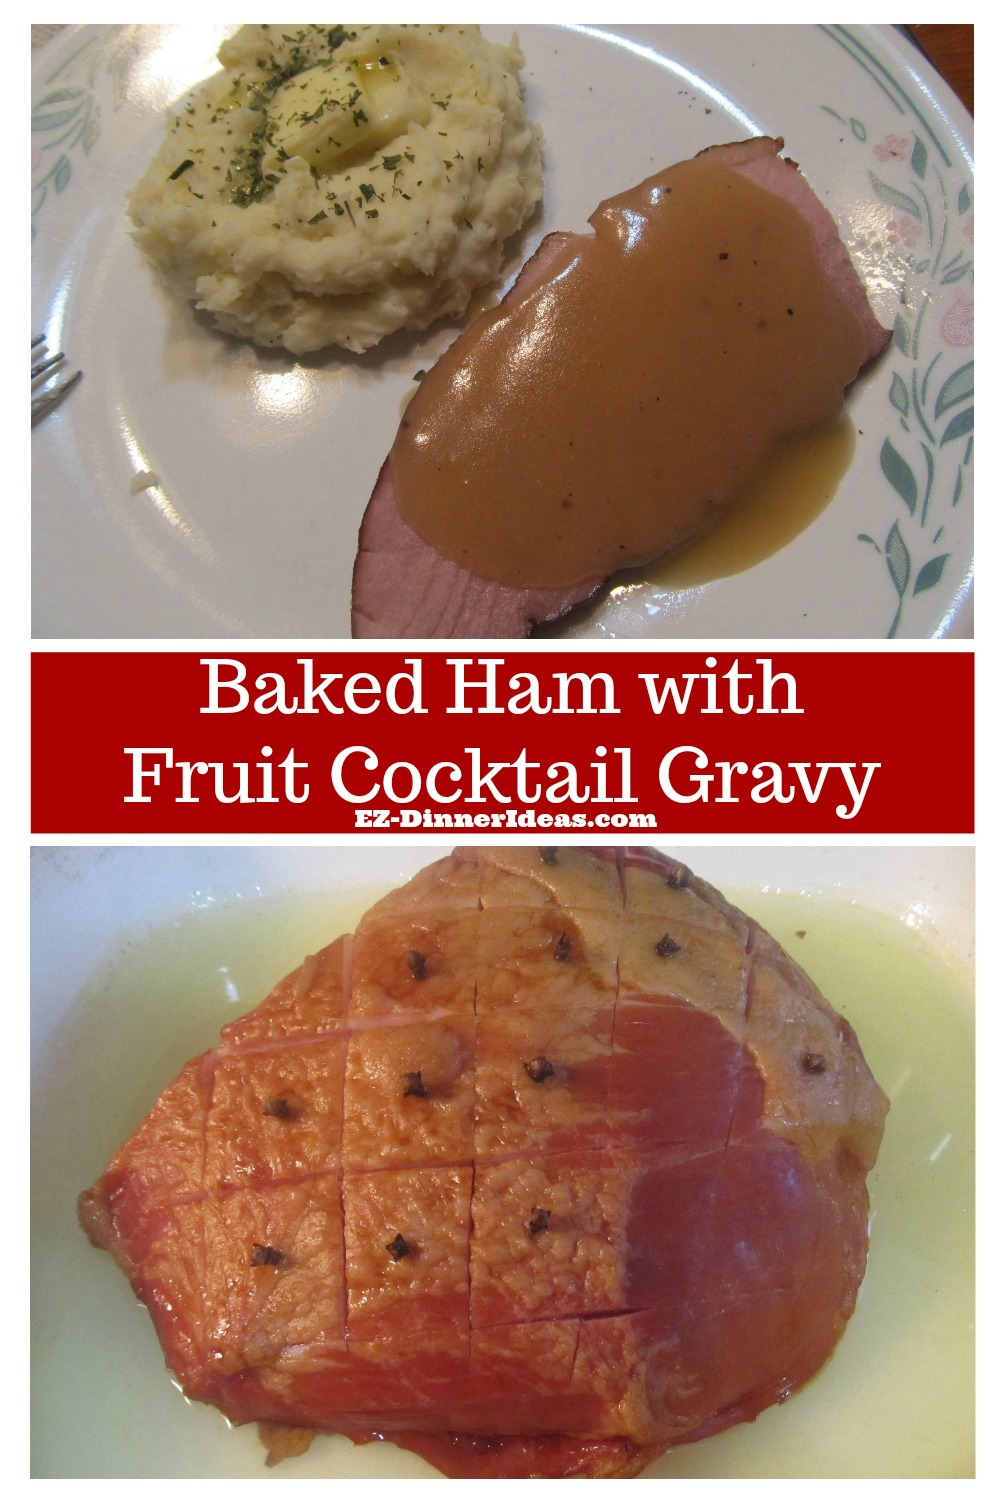 Baked ham dinner menu with fruit cocktail gravy is a versatile recipe.  It applies to different shapes, sizes and cuts of ham.  Makes ham dinner super easy.